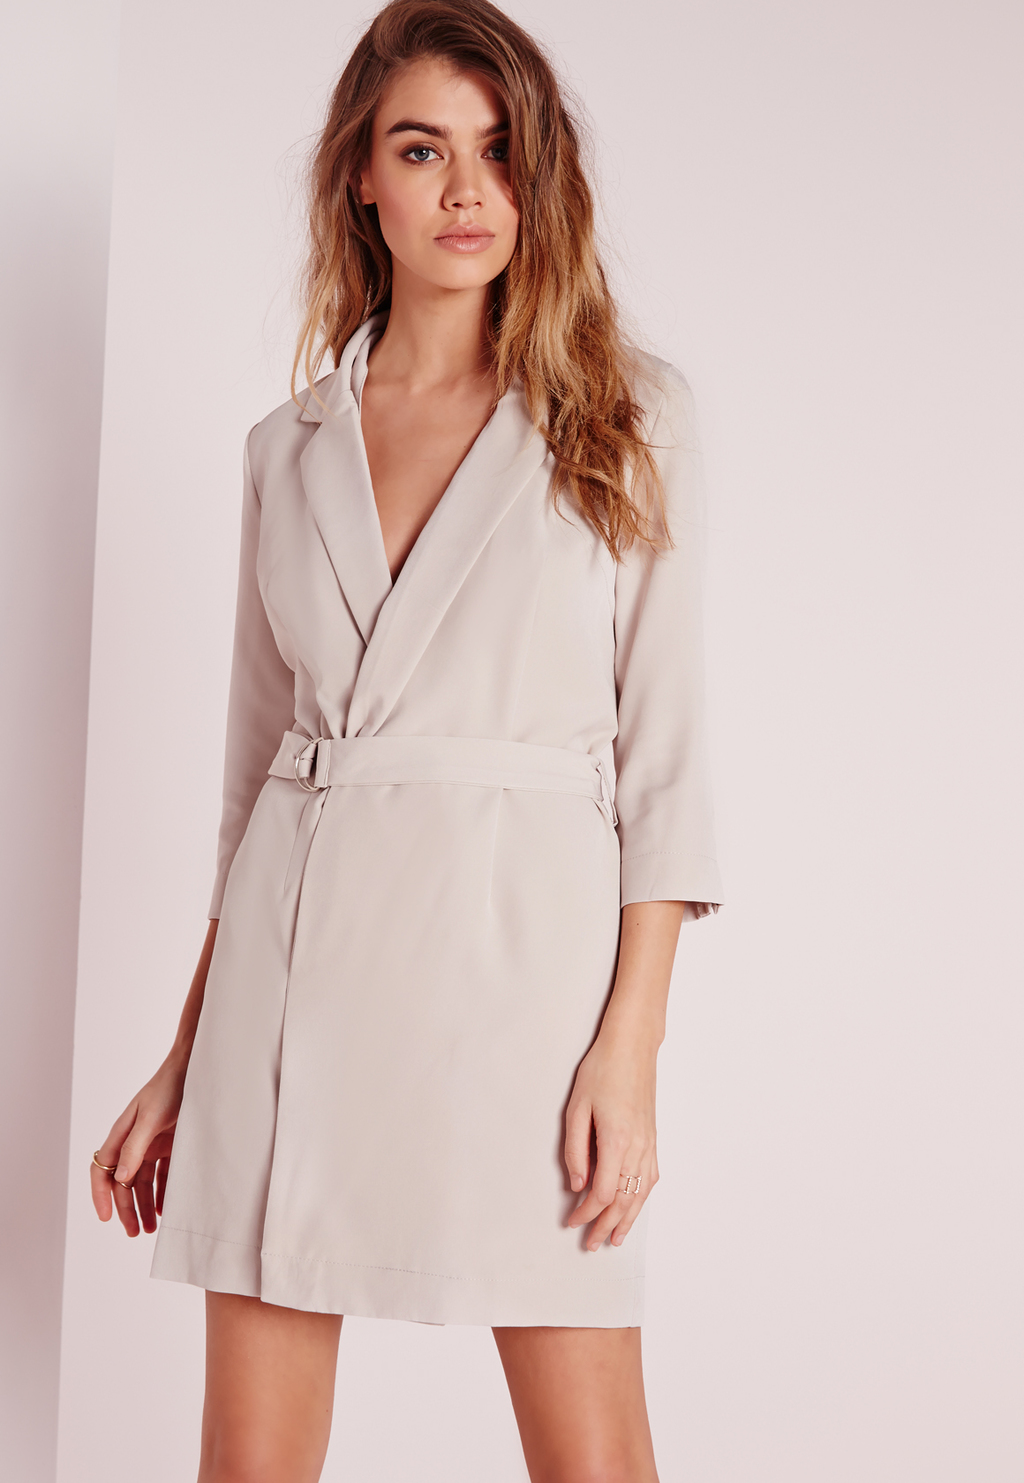 D Ring Blazer Dress Grey, Grey - style: shift; length: mid thigh; neckline: v-neck; pattern: plain; waist detail: belted waist/tie at waist/drawstring; predominant colour: light grey; fit: body skimming; fibres: polyester/polyamide - stretch; occasions: occasion; sleeve length: 3/4 length; sleeve style: standard; pattern type: fabric; texture group: other - light to midweight; season: s/s 2016; wardrobe: event